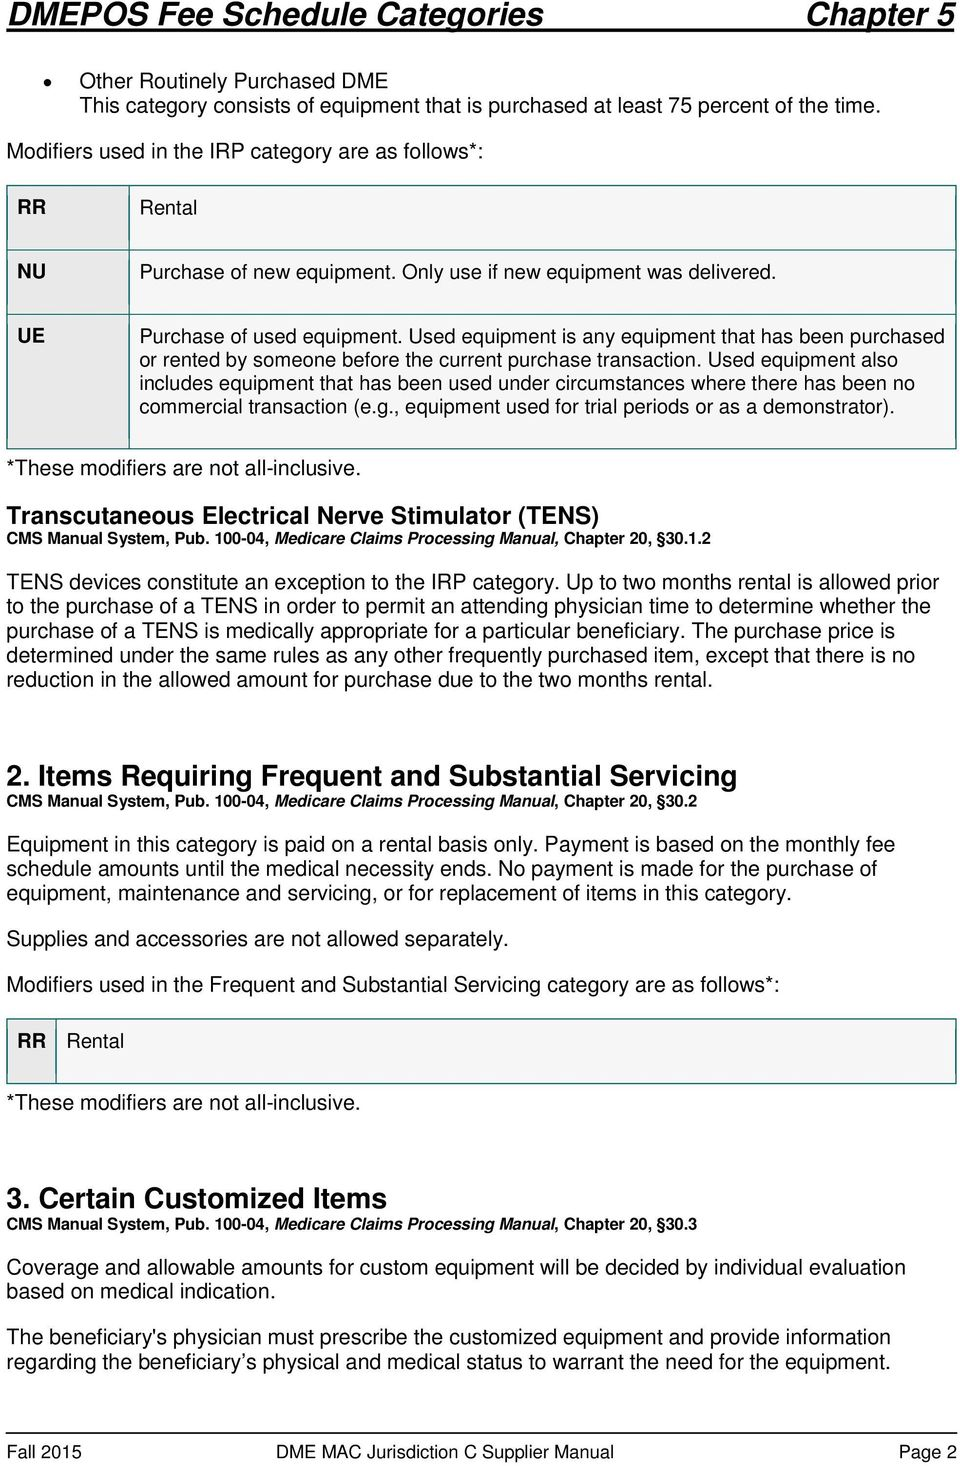 Fall 2015 DME MAC Jurisdiction C Supplier Manual Page 2. Used equipment is  any equipment that has been purchased or rented by someone before the  current